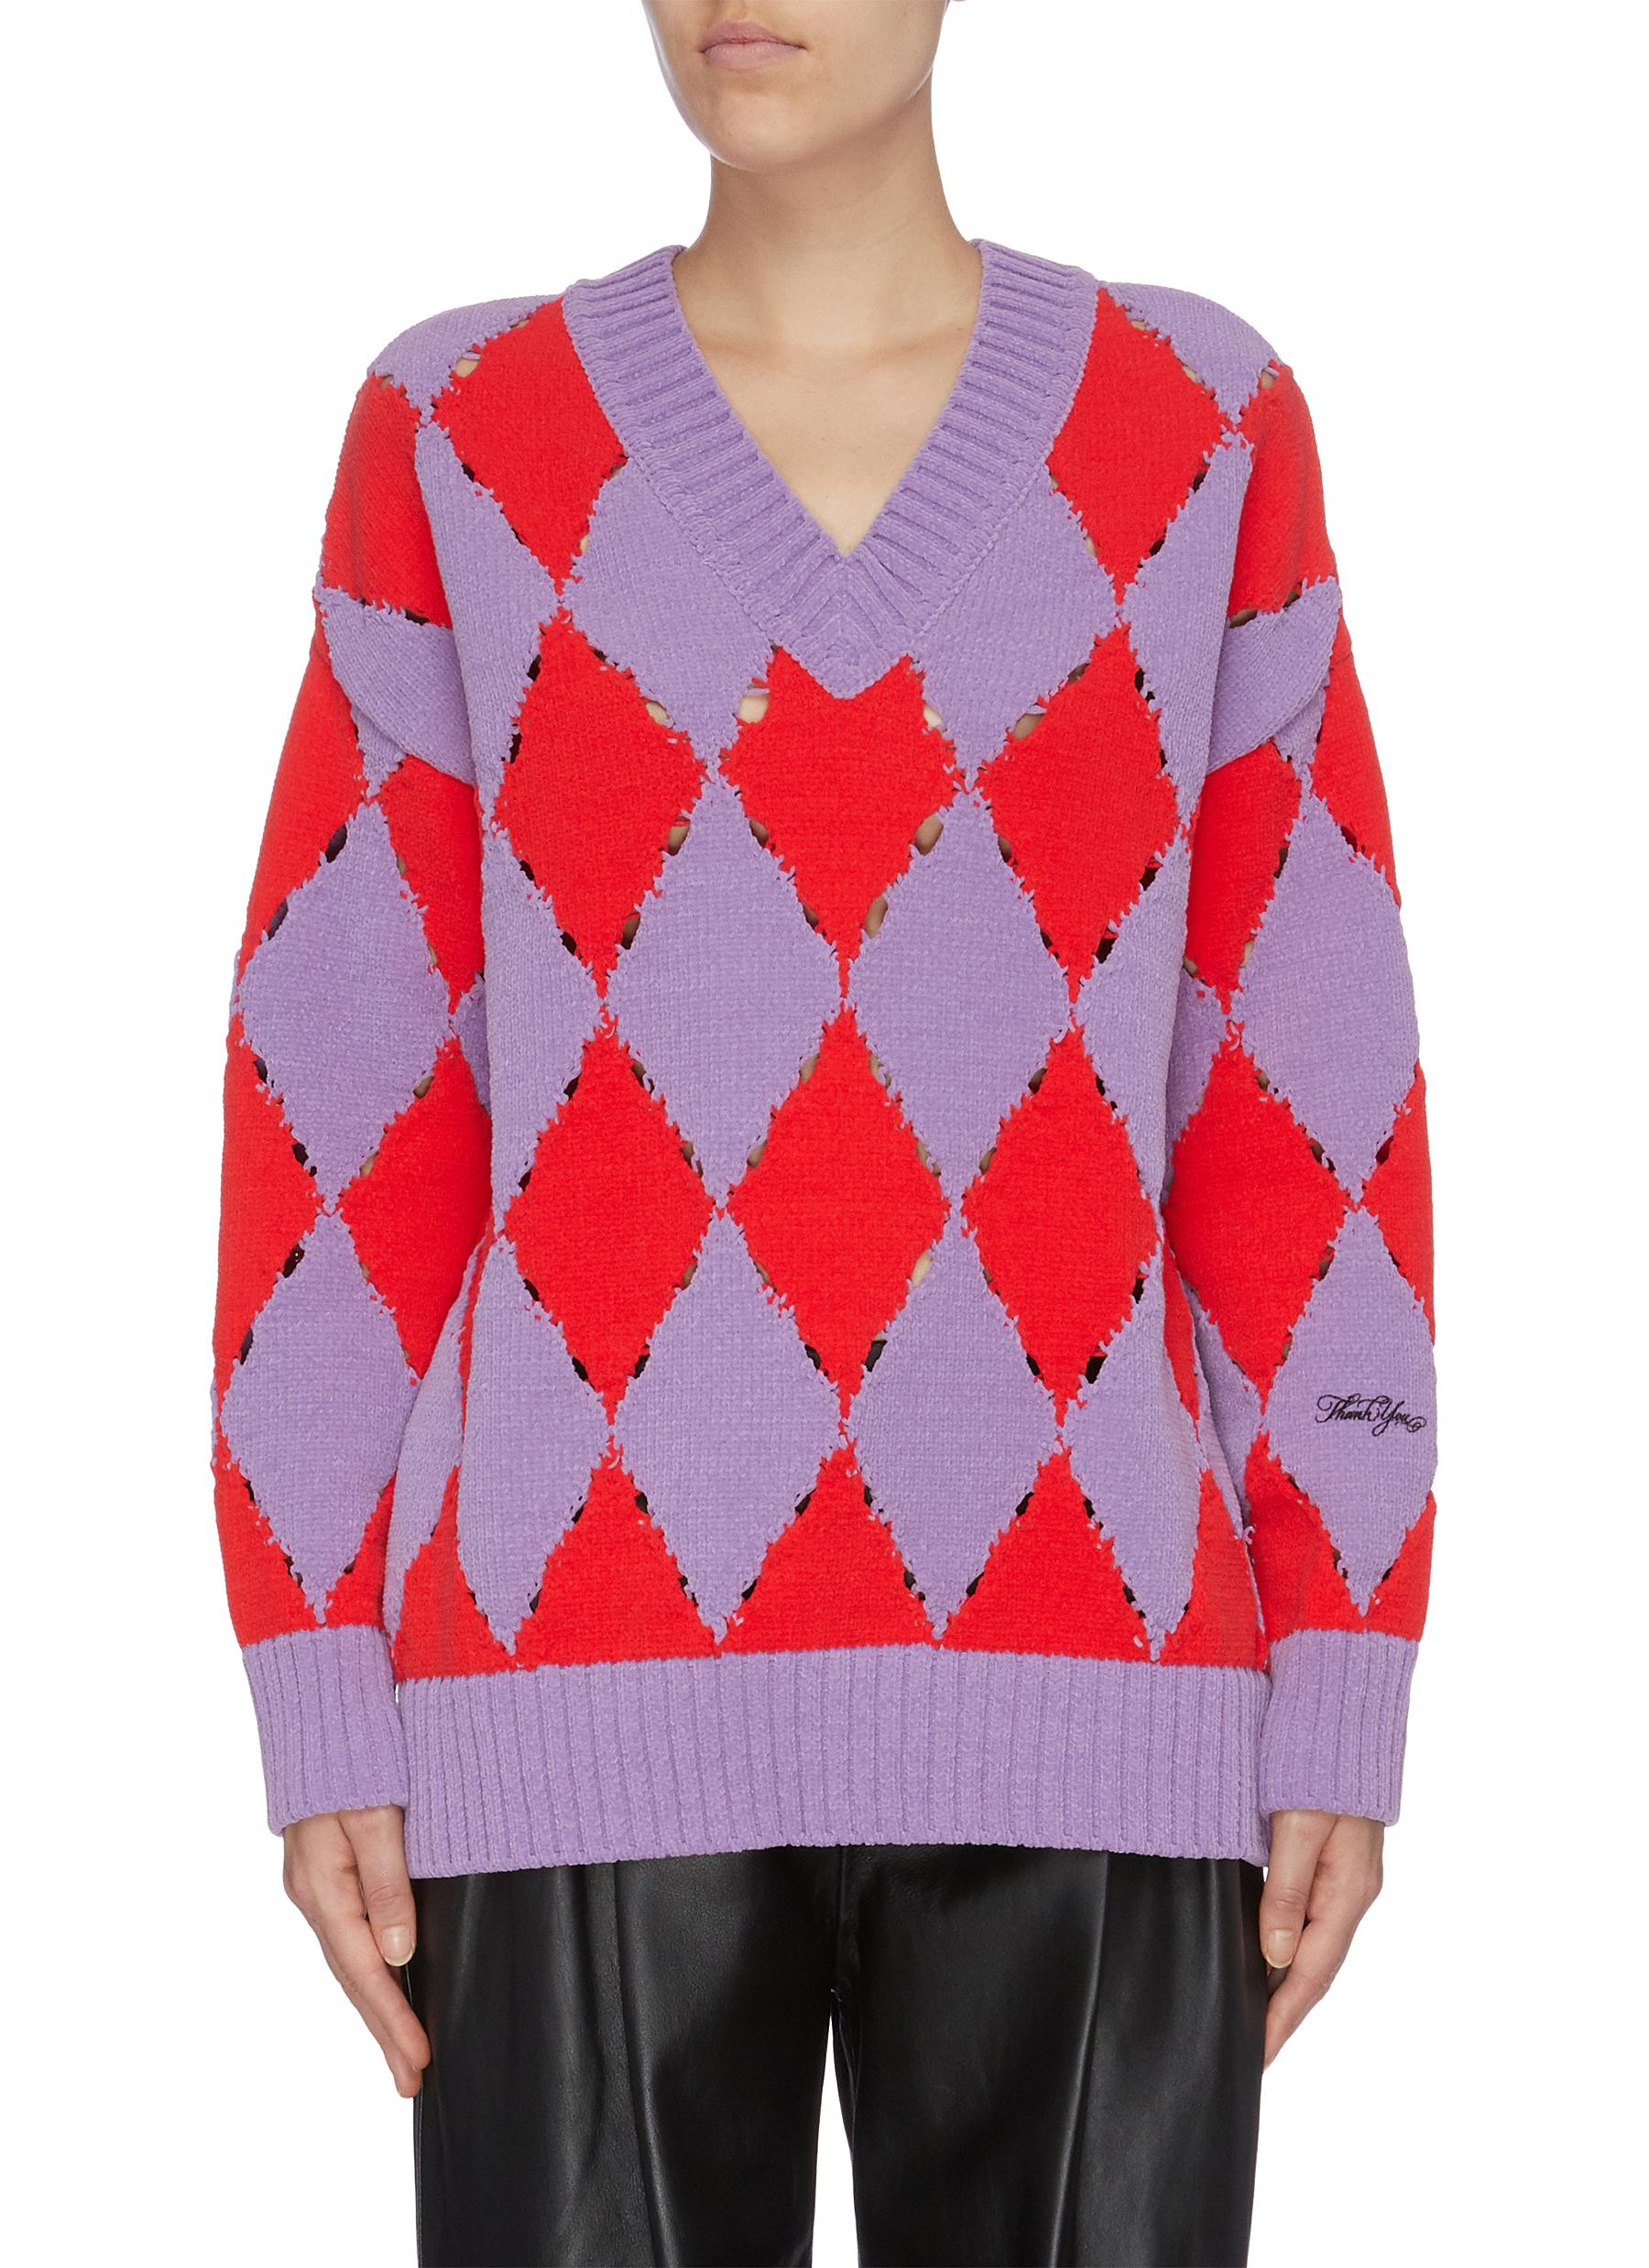 Diamond patchwork V-neck sweater by Philosophy Di Lorenzo Serafini